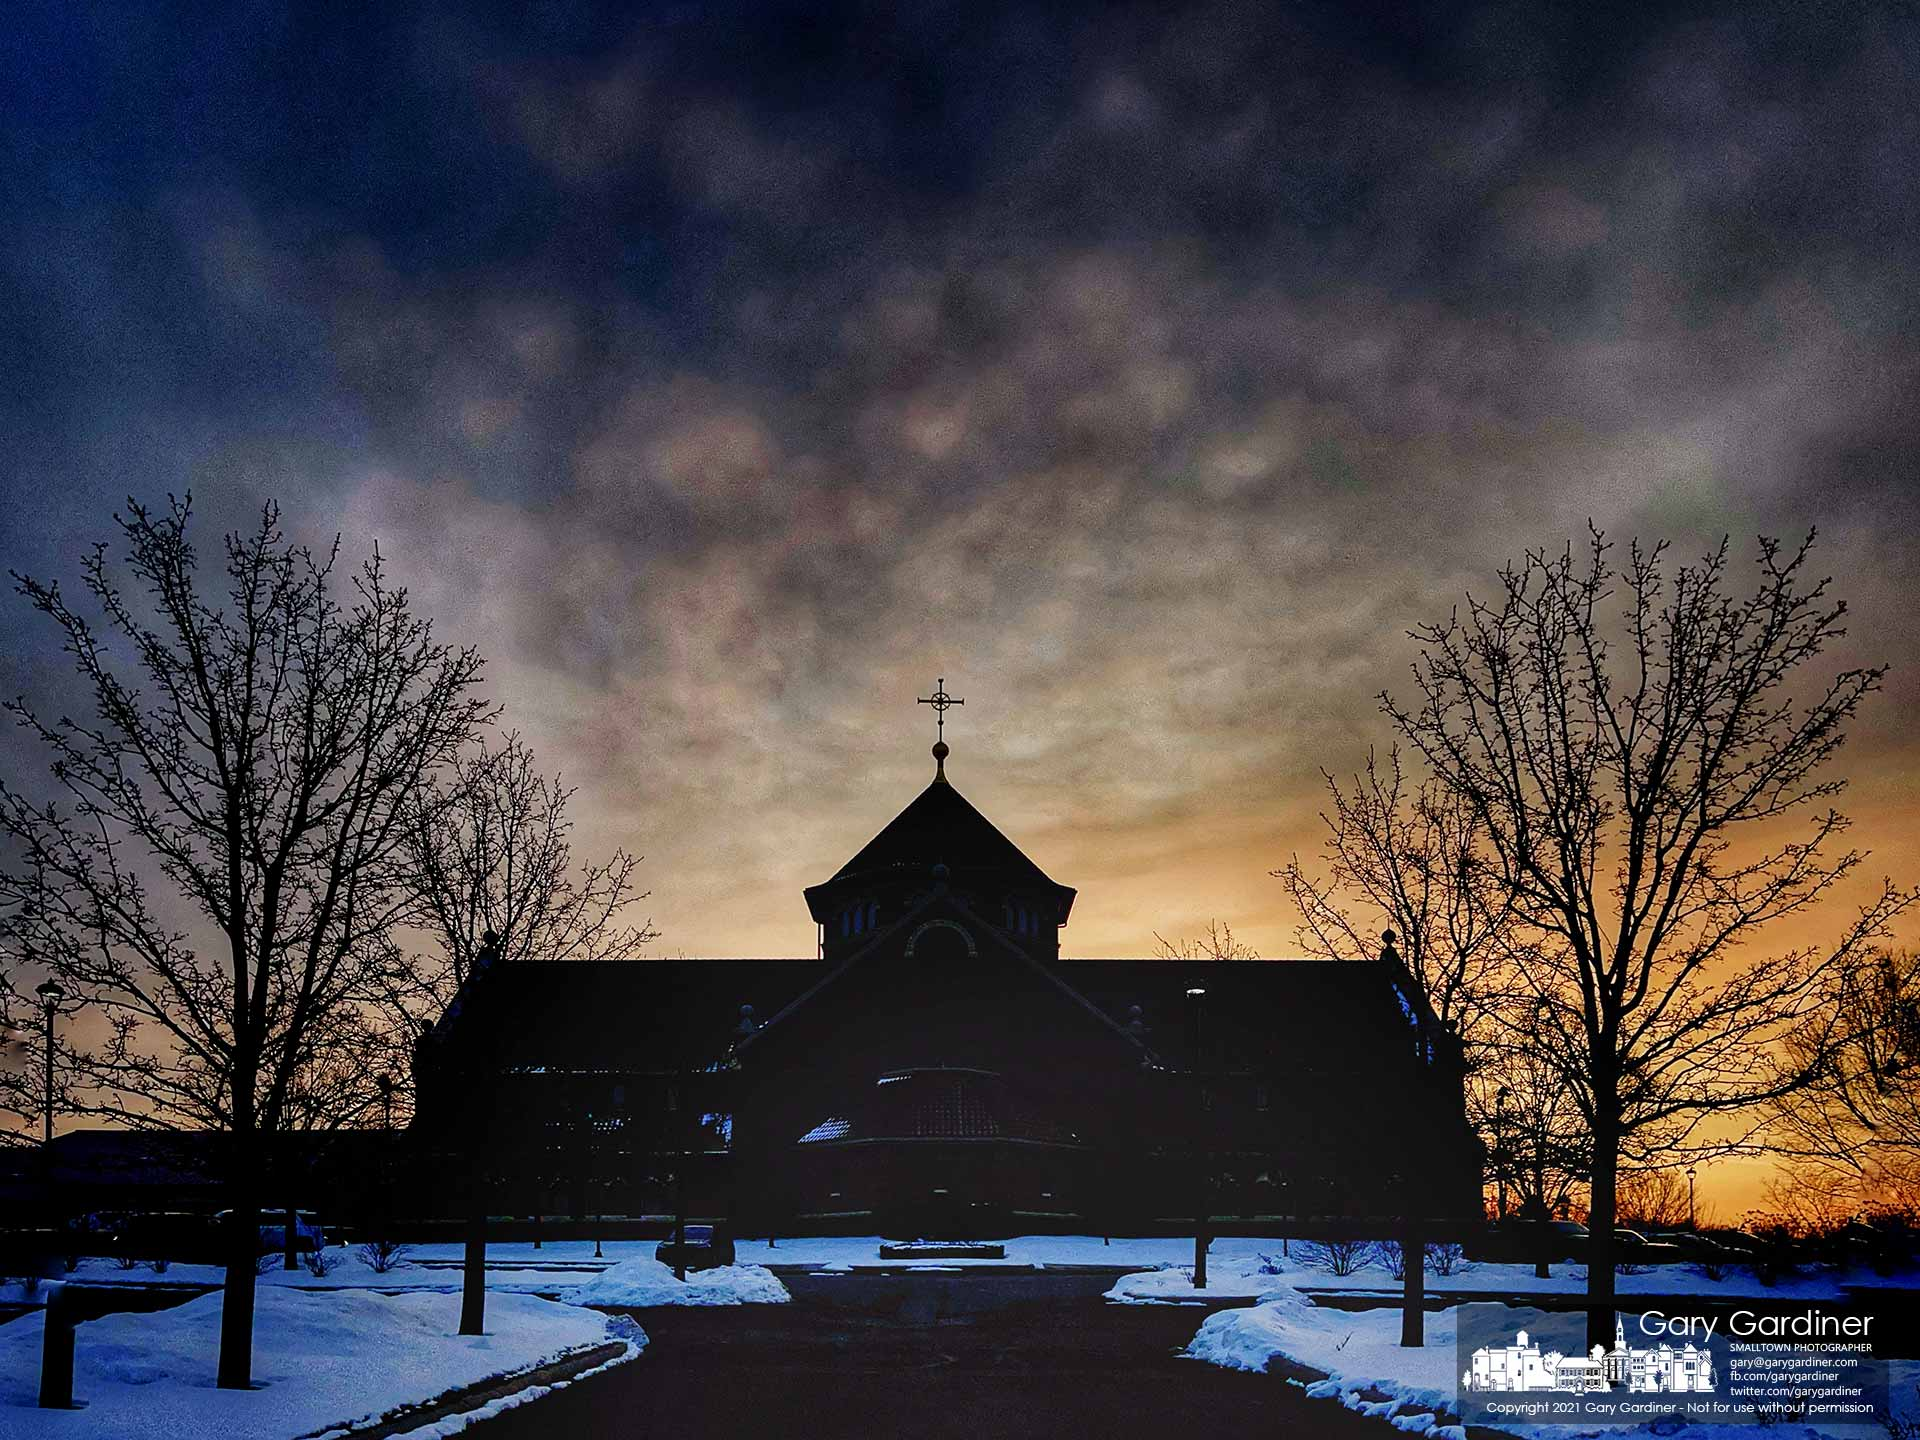 The sun rises on a cold morning at St. Paul the Apostle Catholic Church in Westerville. My Final Photo for Feb. 14, 2021.